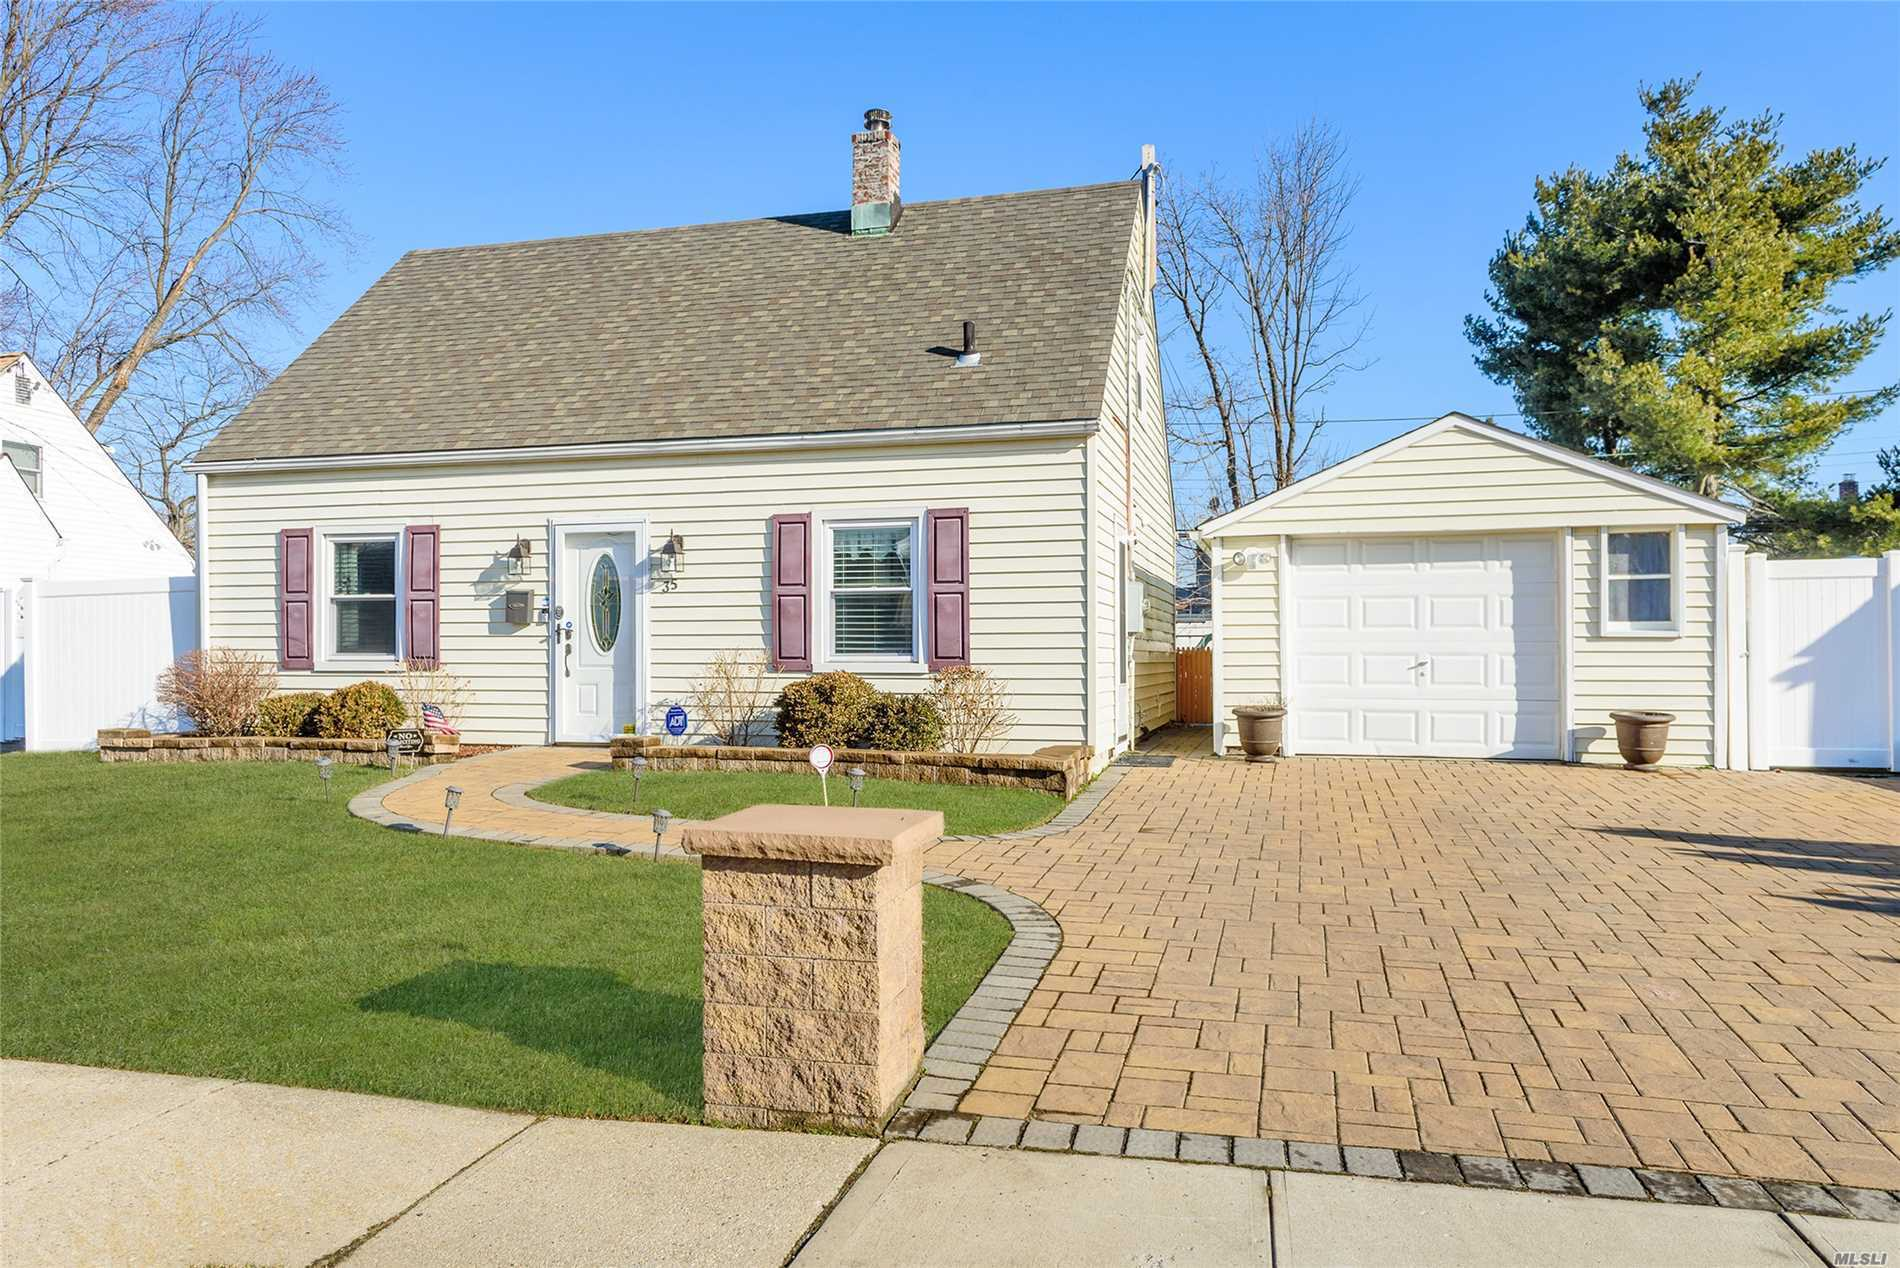 Fantastic 3 Bed Cape In Levittown For $409, 000. The Perfect Midblock Location With Amazing Curb Appeal. A Large Double Wide Pavement Driveway & Walkway, 1.5 Car Garage & Fully Fenced Private Yard! Boasting A New Kitchen W/ Stainless Steel Appliances, Ig Sprinklers, New Washer & Dryer, Updated Windows & Roof! Move Right In!